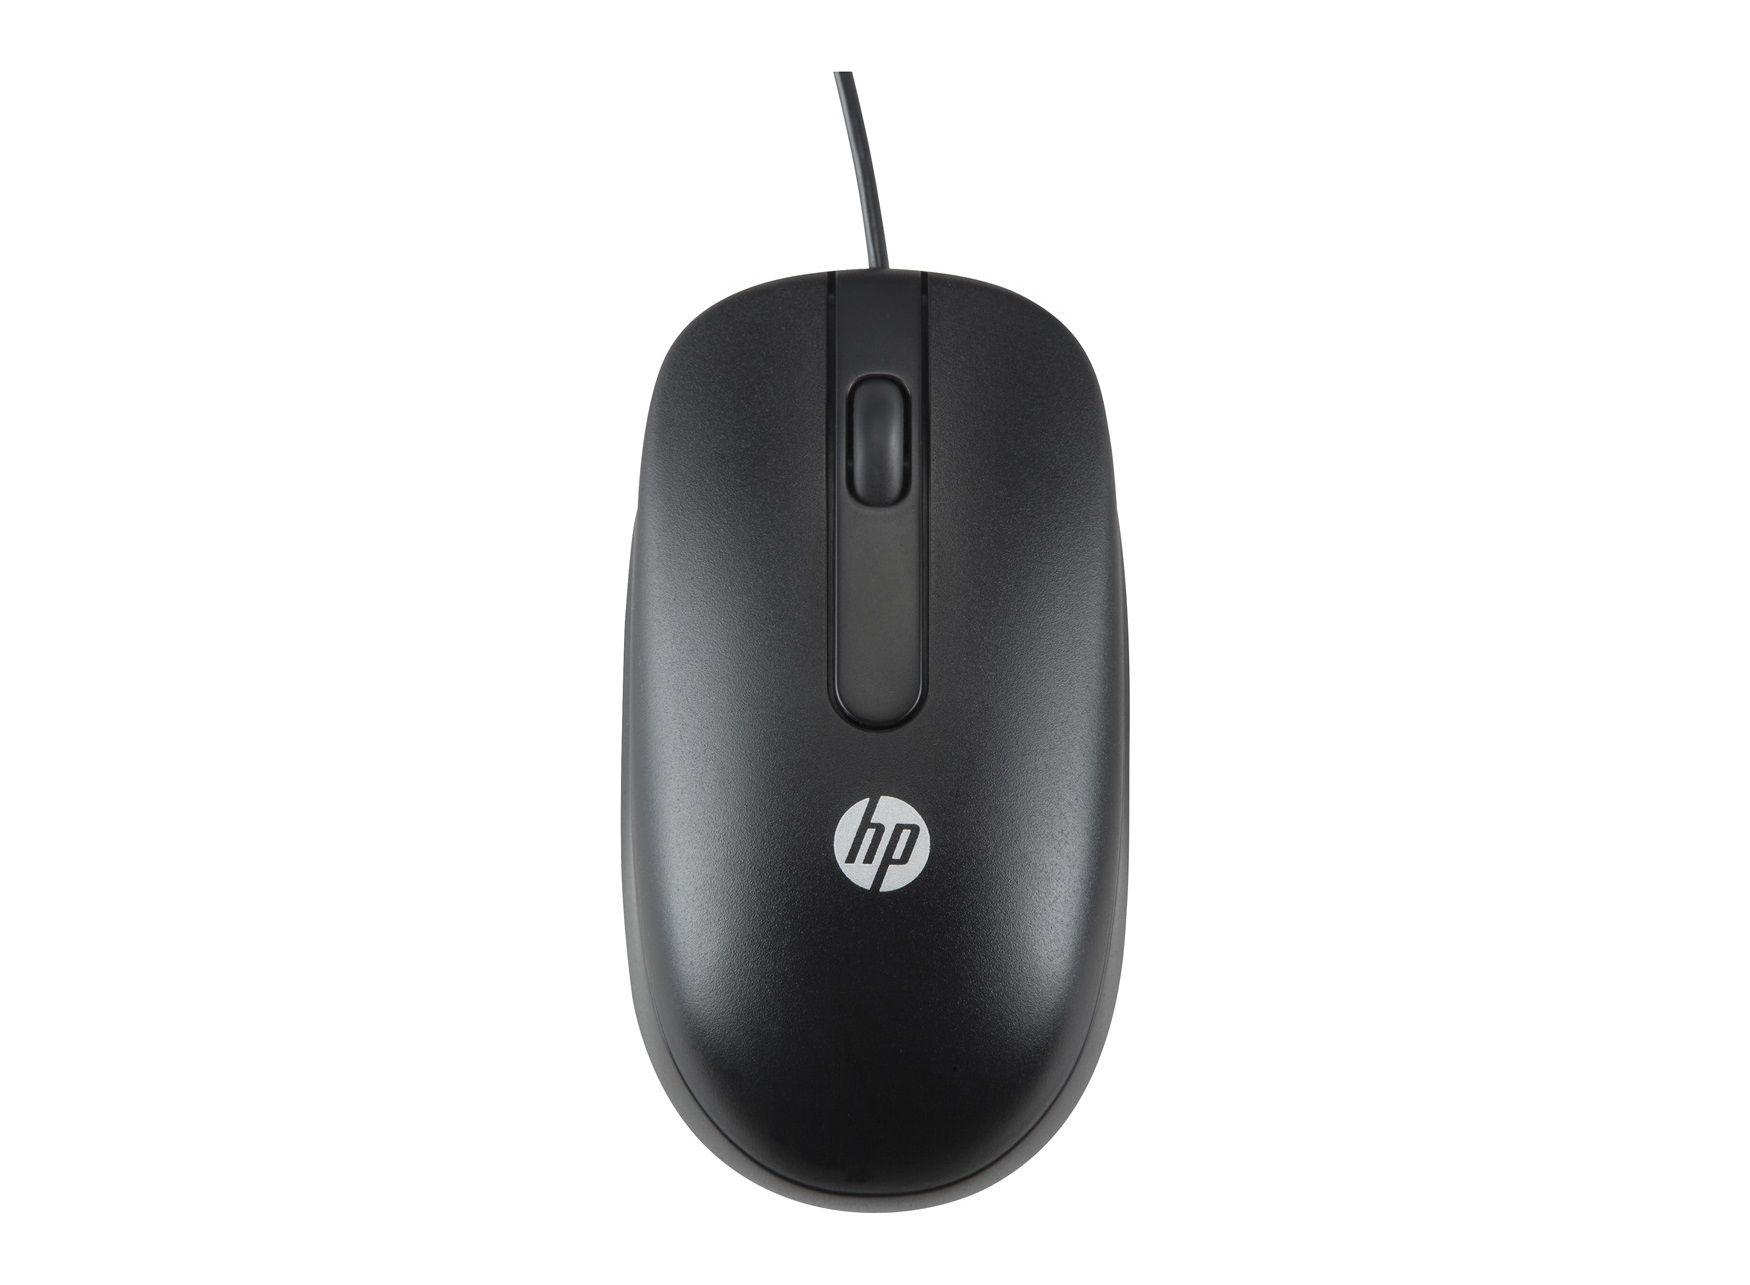 HP 674318-001 USB LASER LIGHT OPTICAL MOUSE 1000DPI AMBIDEXTROUS BLACK MICE